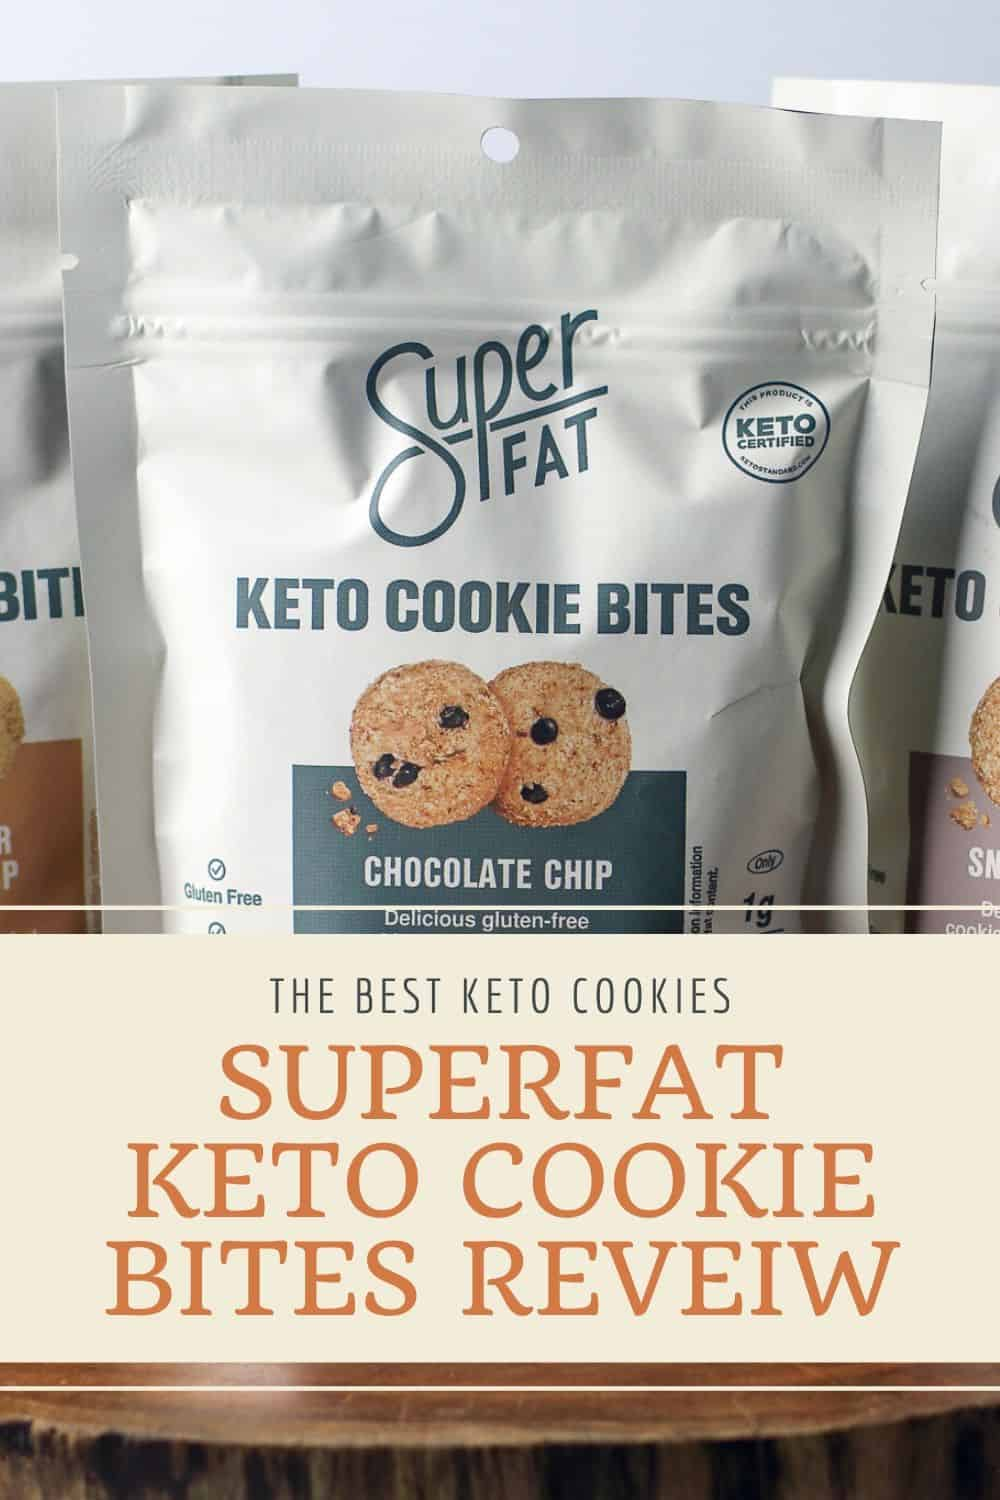 SuperFat Keto Cookie Bite Review